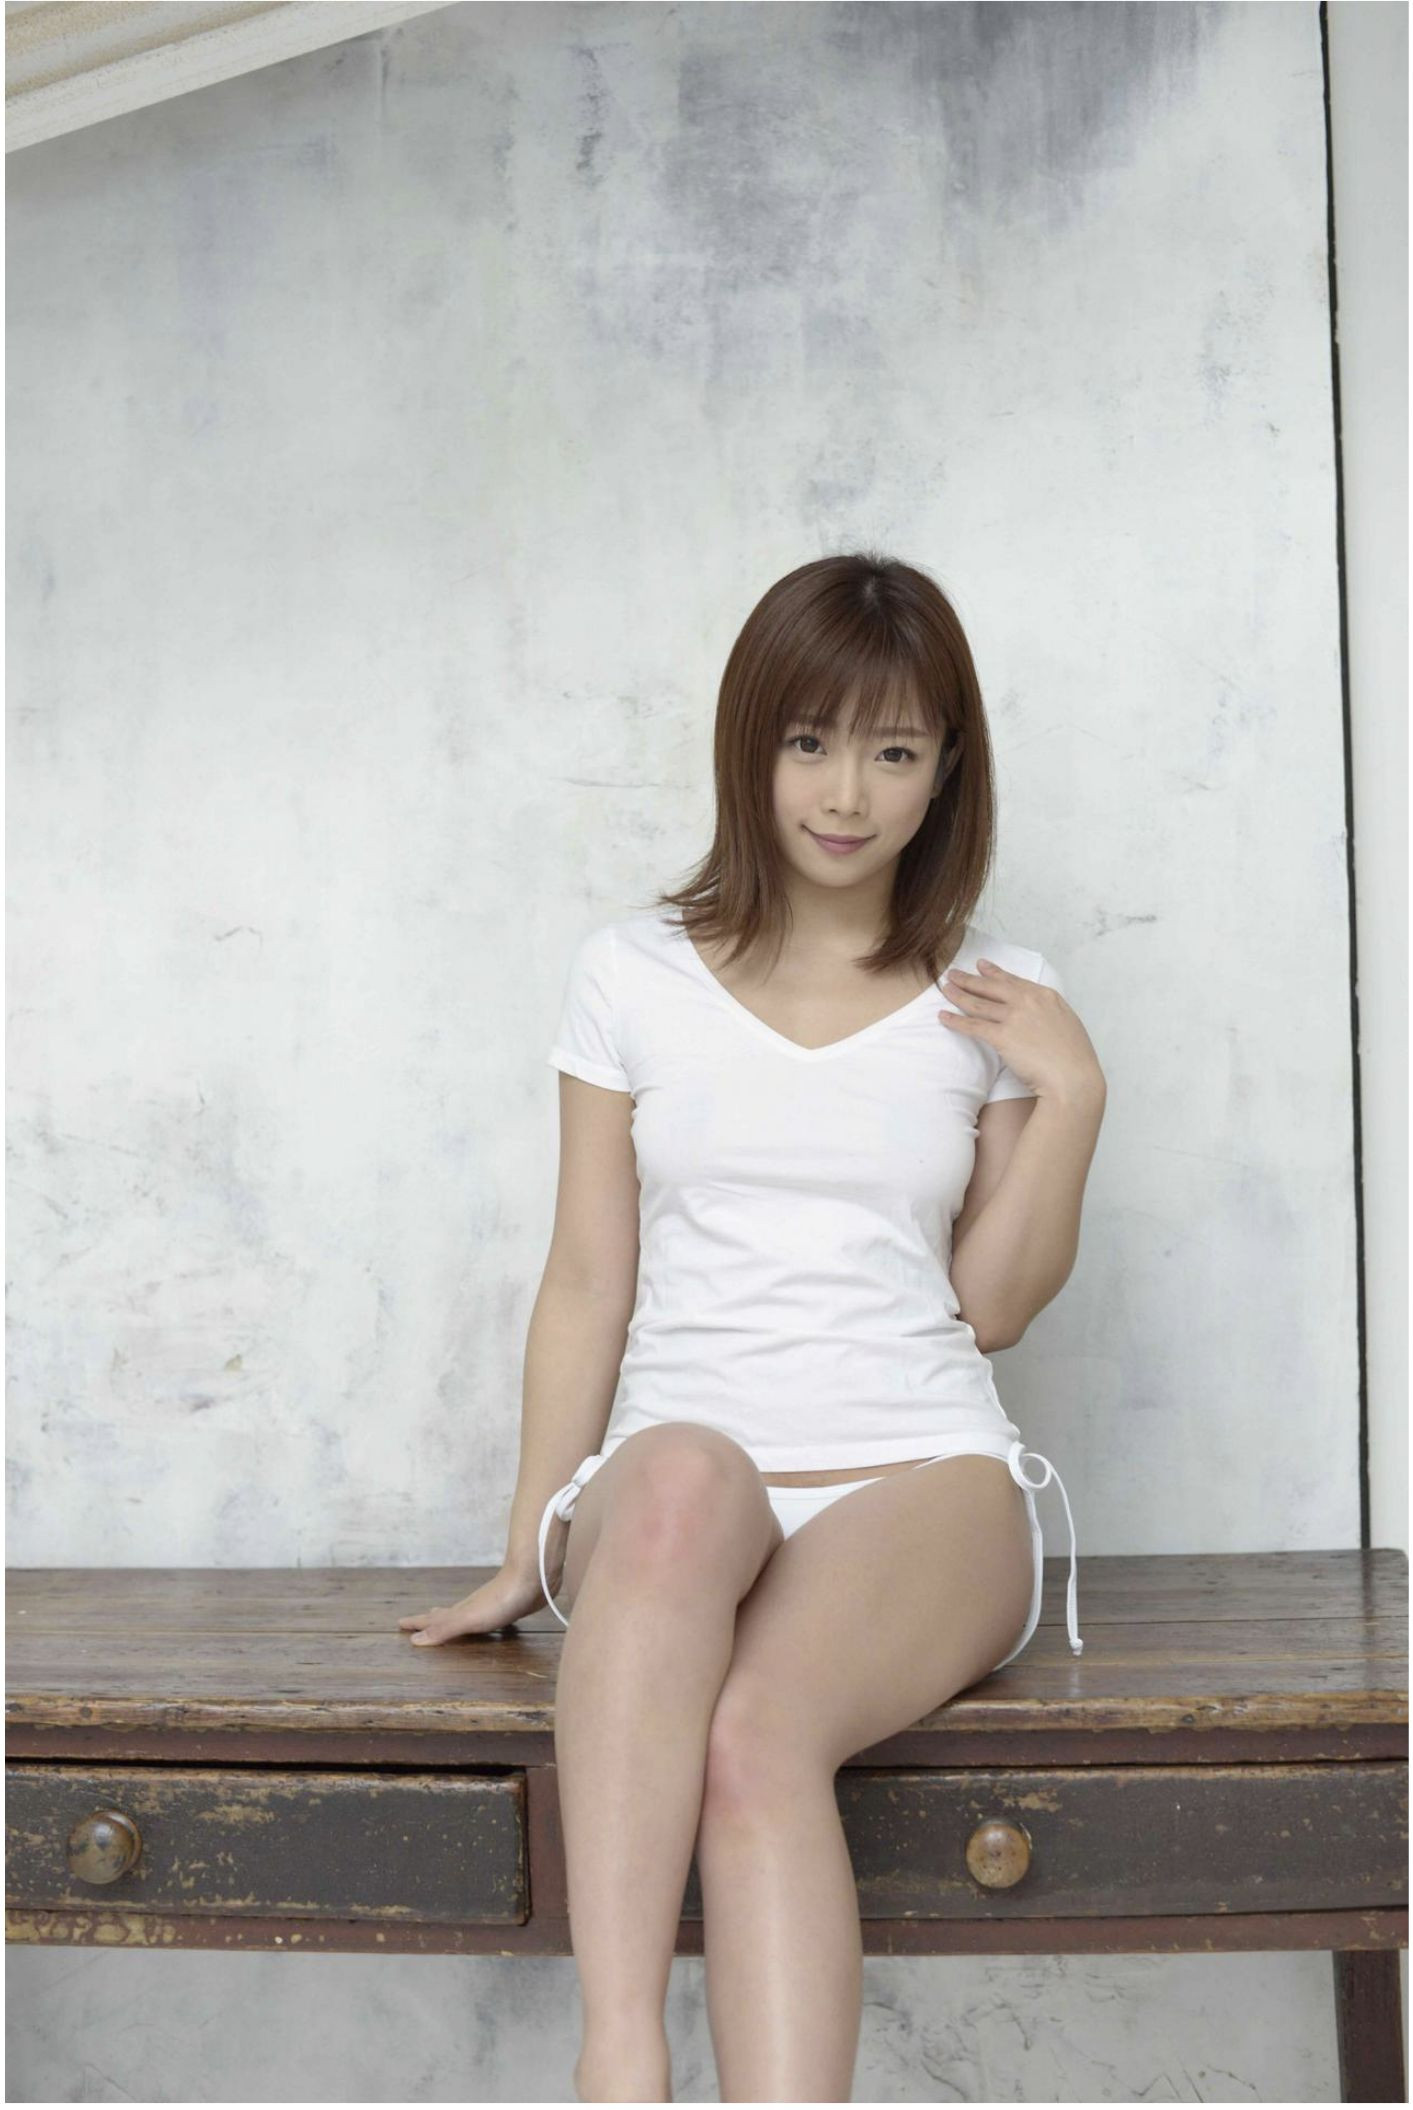 SOFT ON DEMAND GRAVURE COLLECTION 紗倉まな04 photo 006